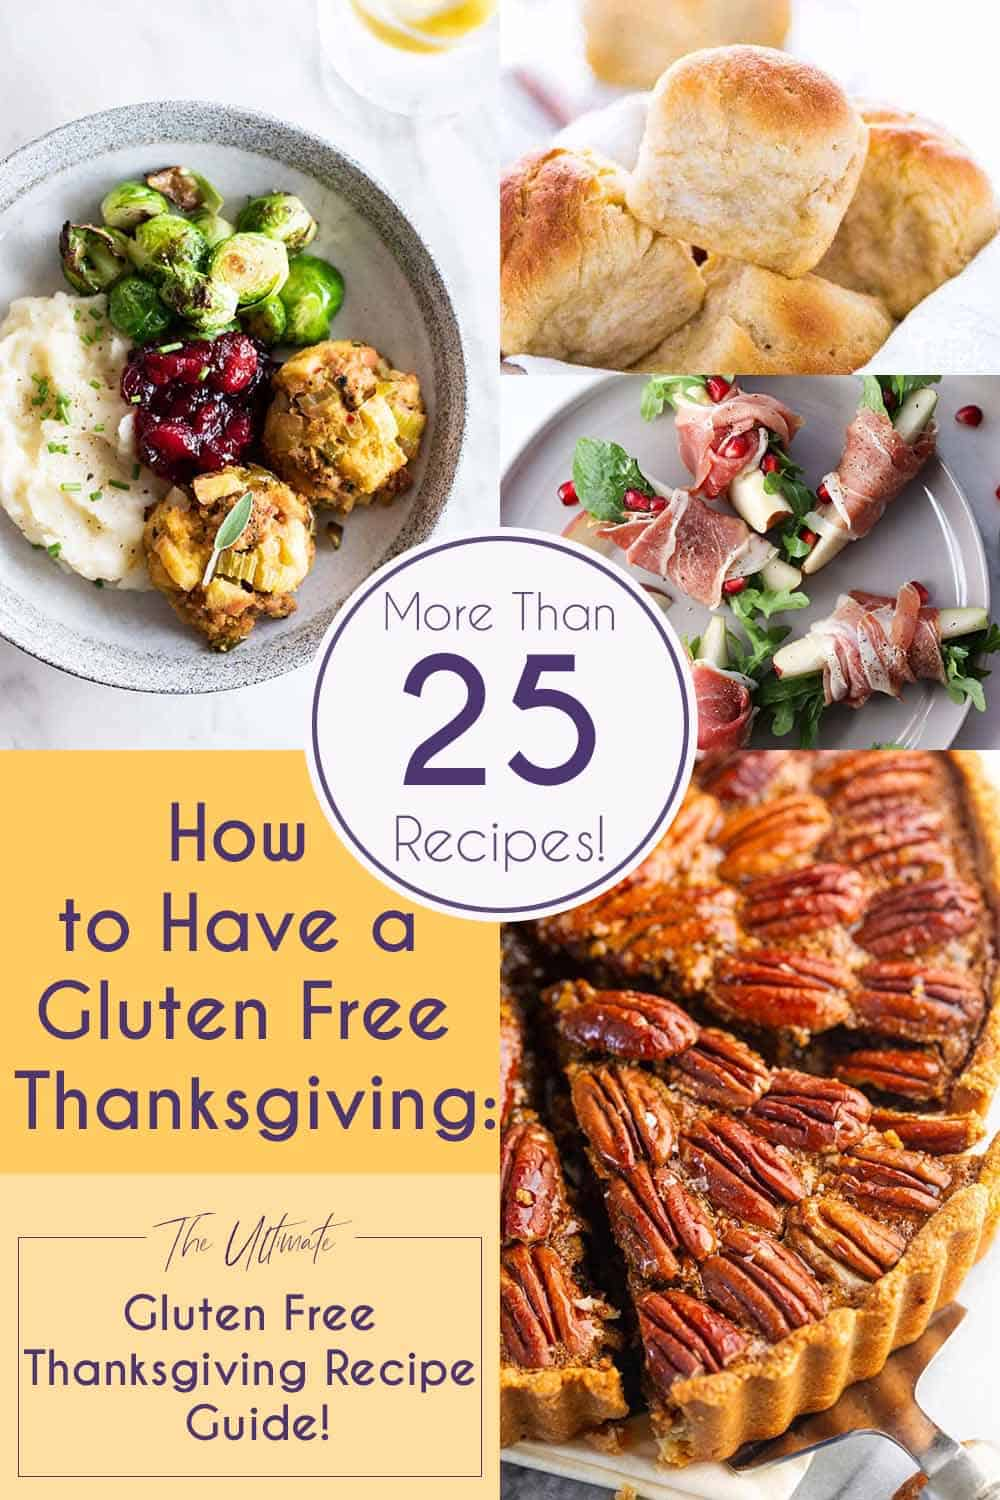 How to Have a Gluten Free Thanksgiving: Your Ultimate Gluten Free Thanksgiving Recipe Guide